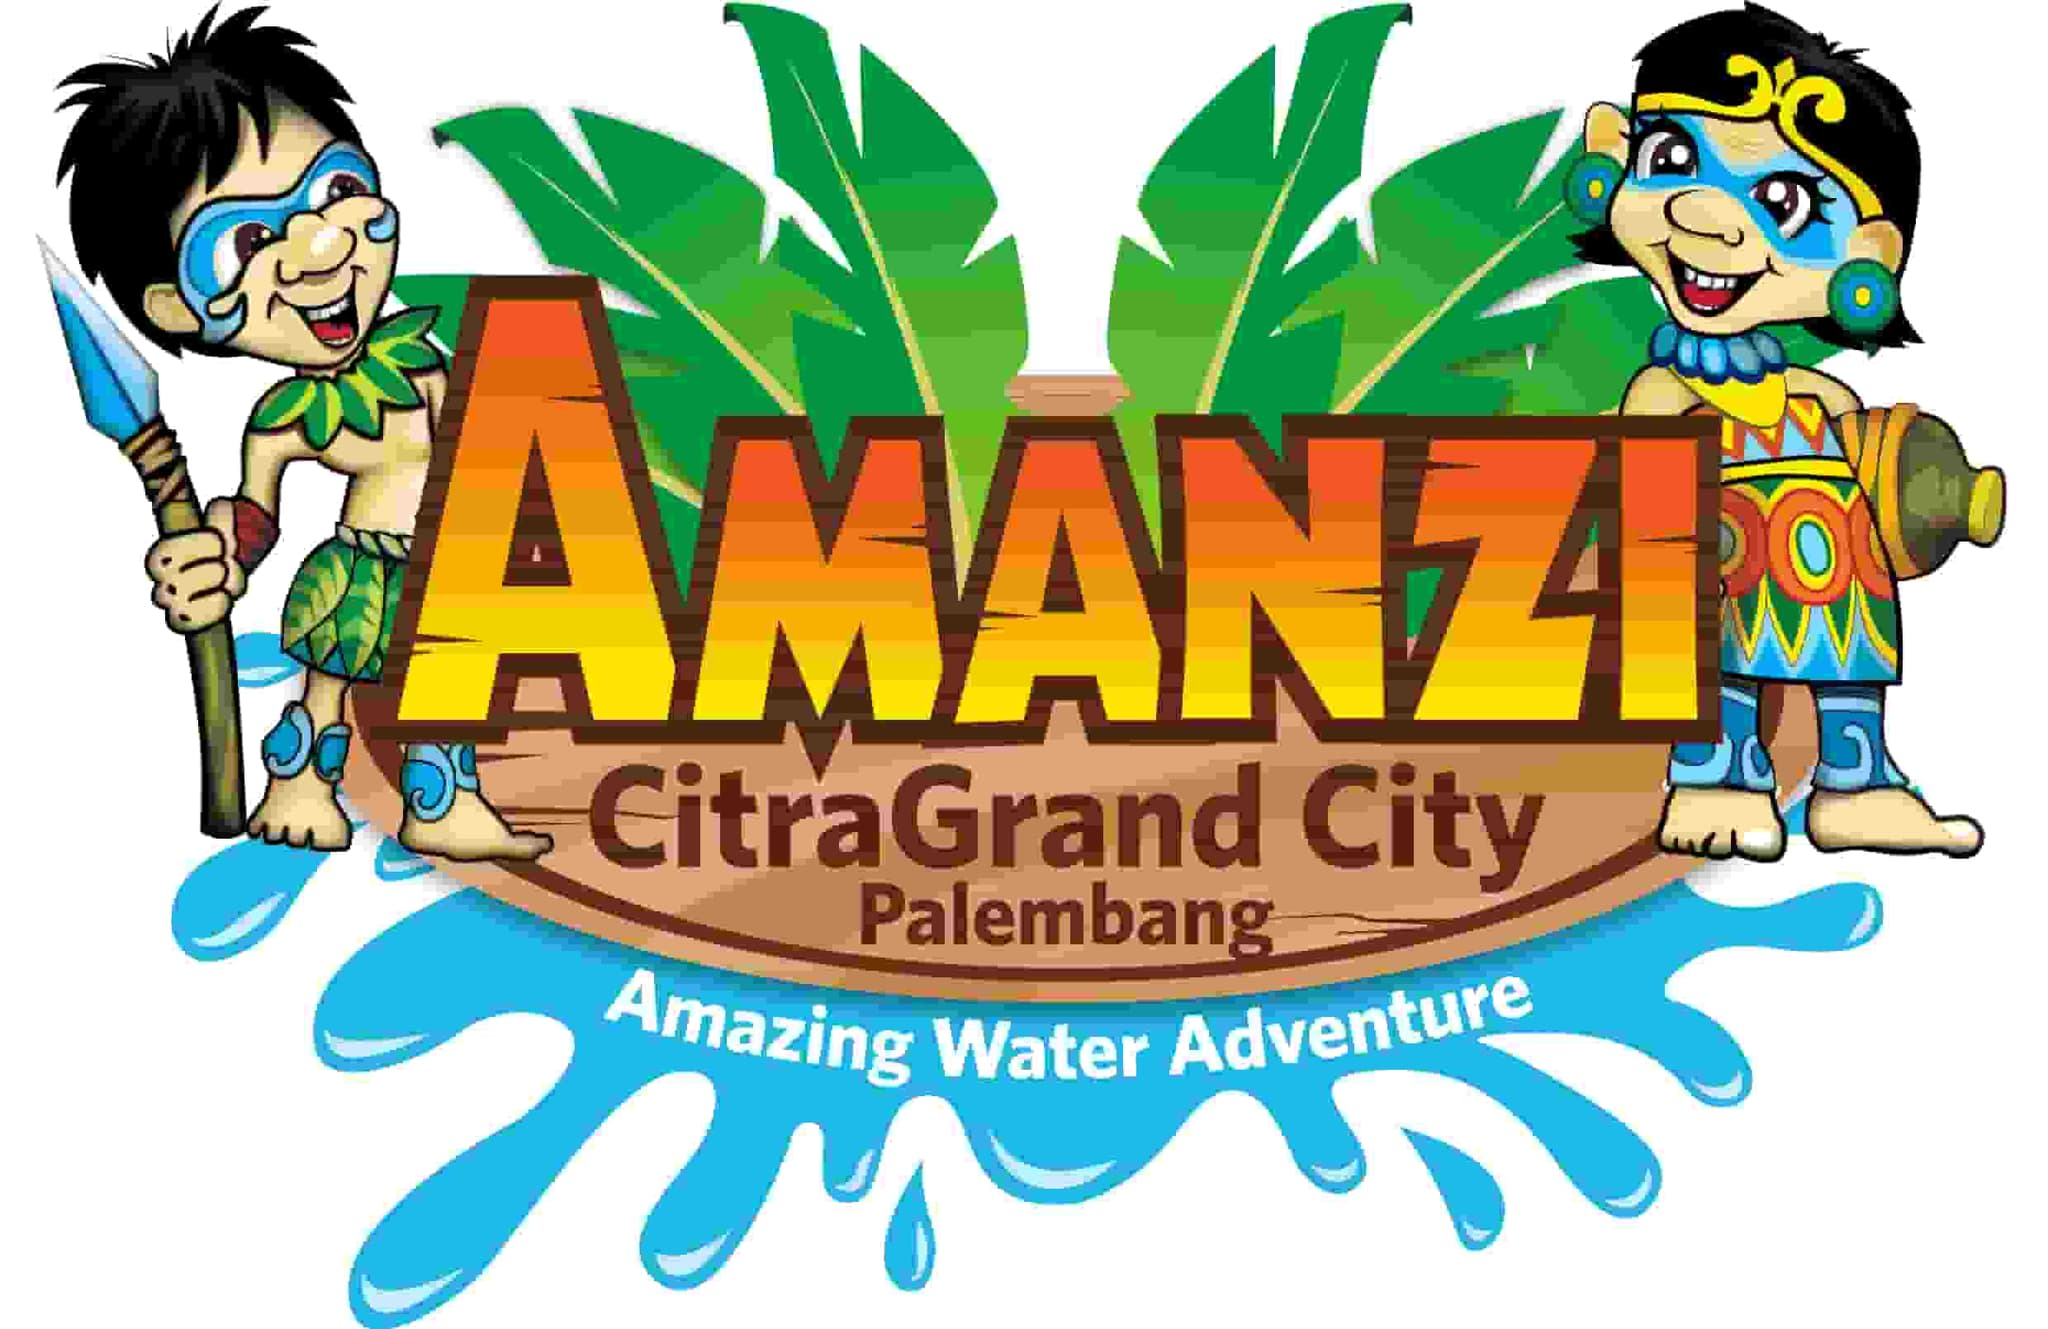 Amanzi Waterpark - Background